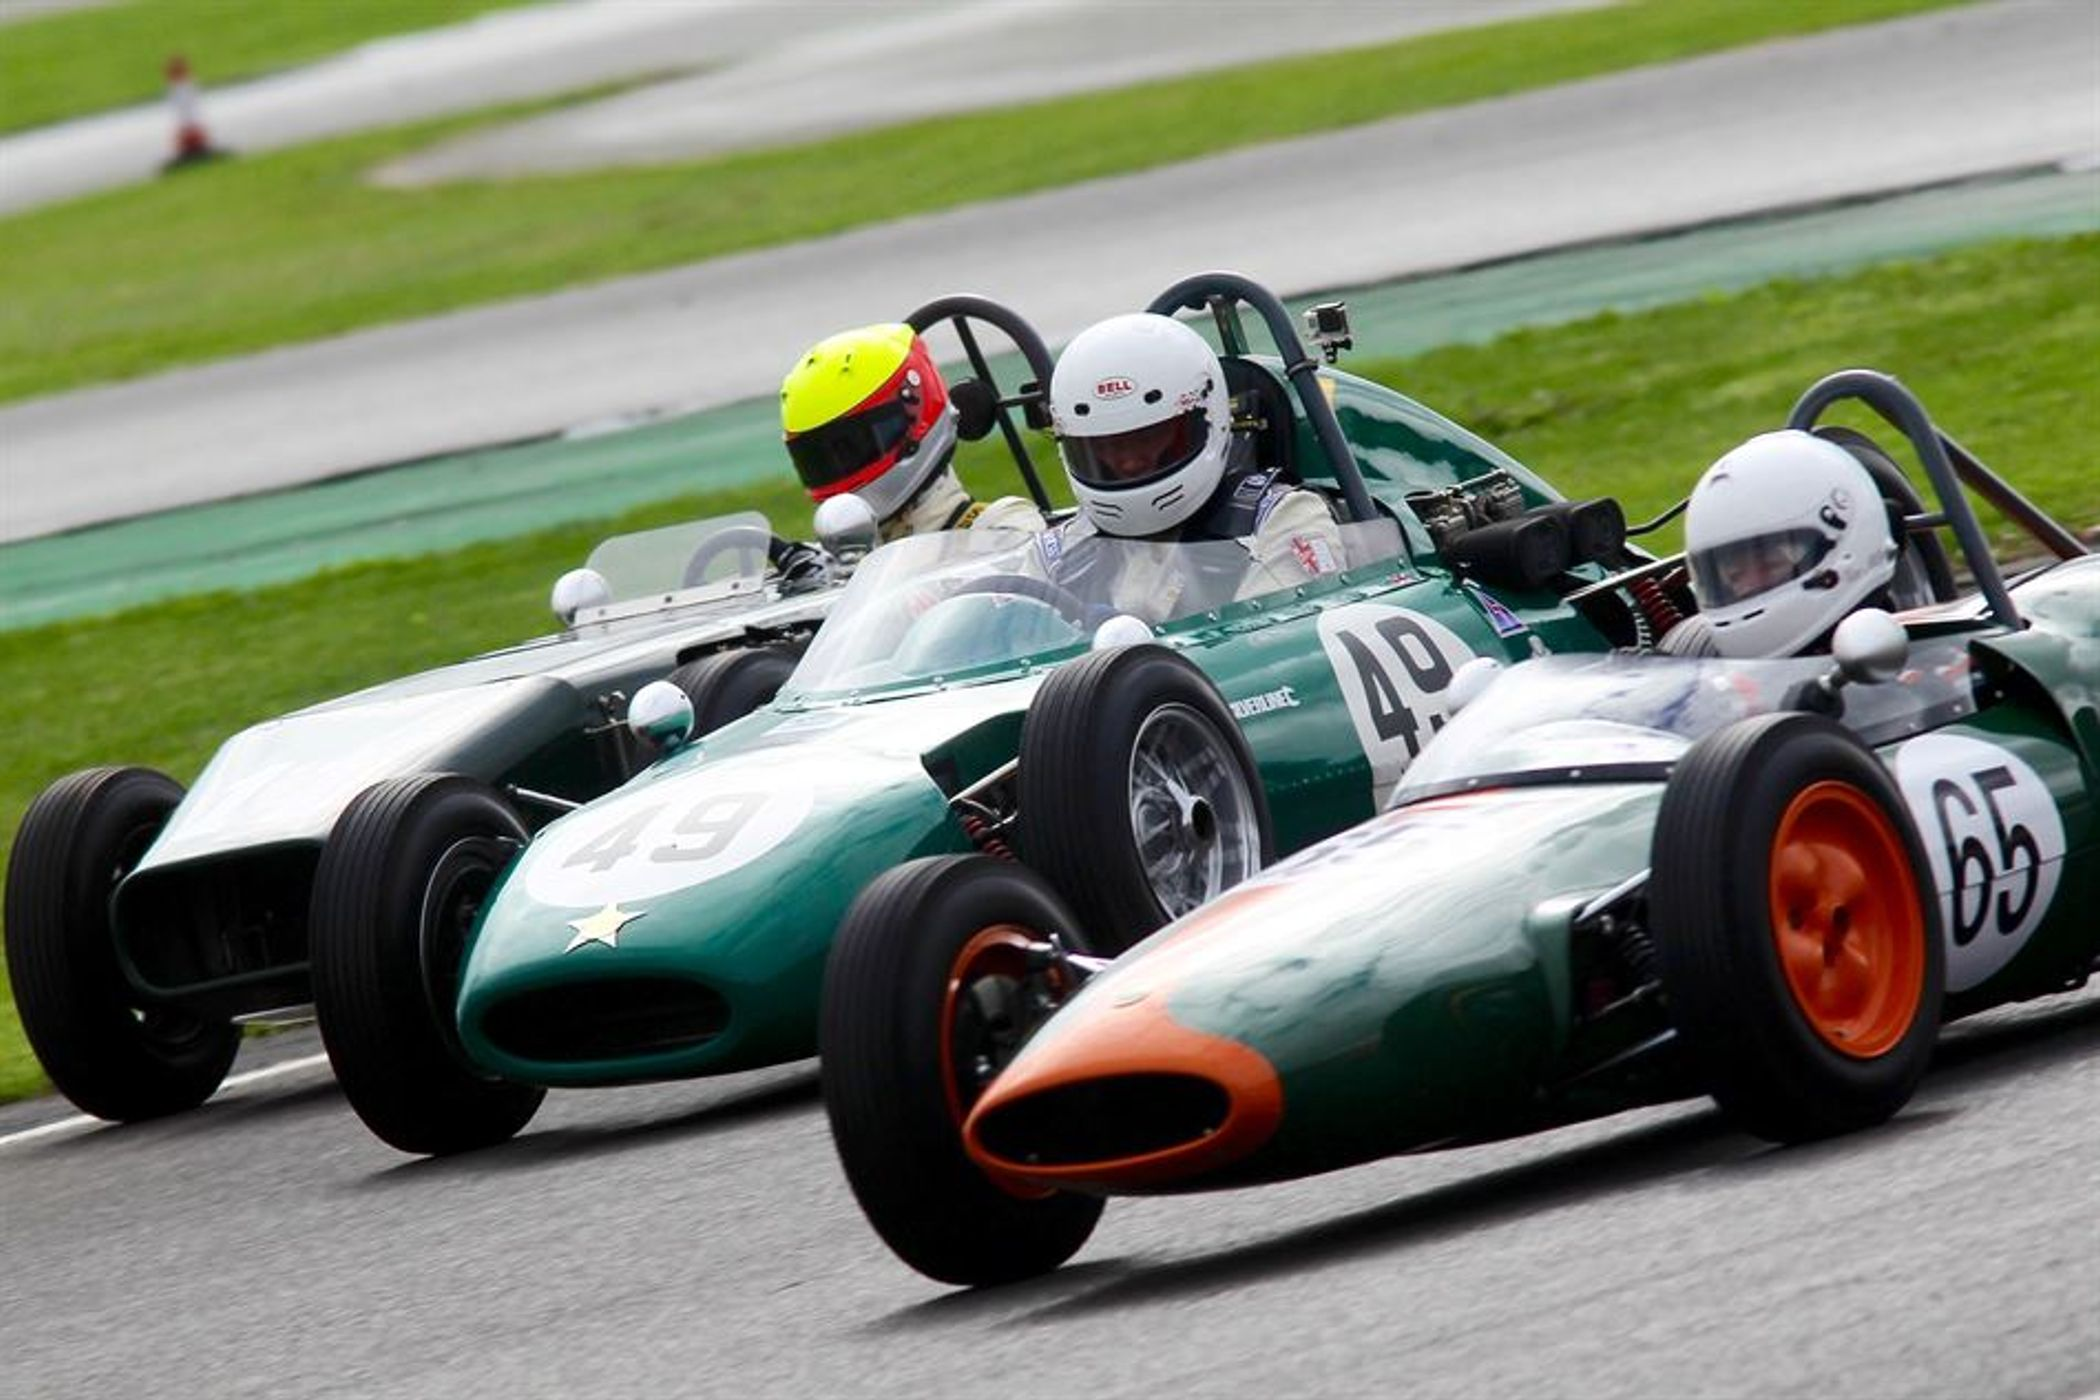 Formula Junior Races At Silverstone Classic Dedicated To World